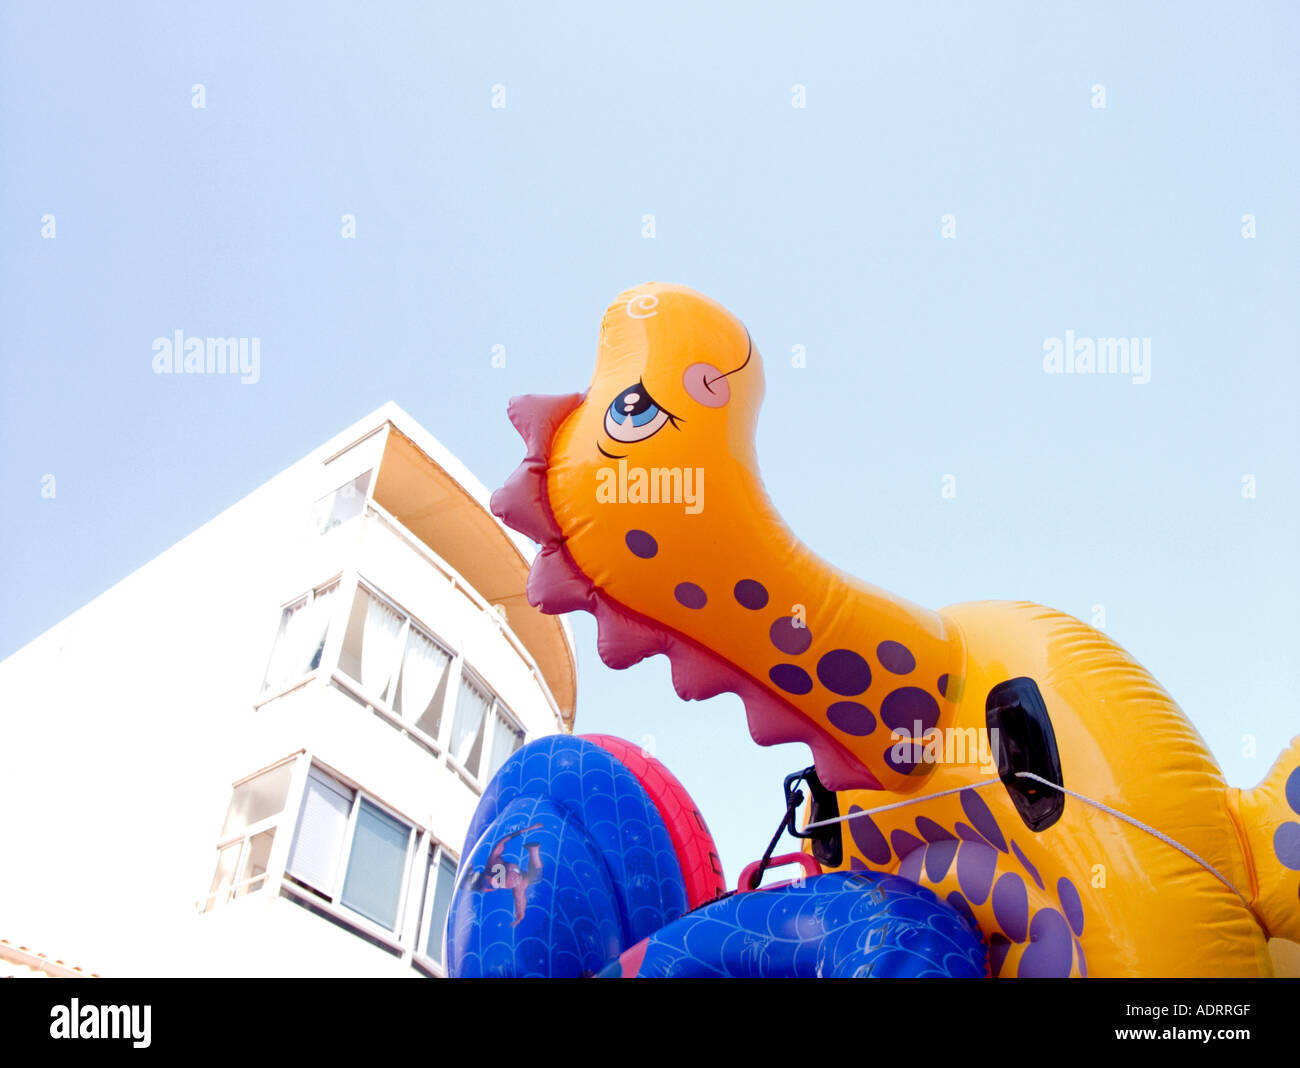 an inflatable toy yellow and orange dragon looks skywards   with flats in background - Stock Image